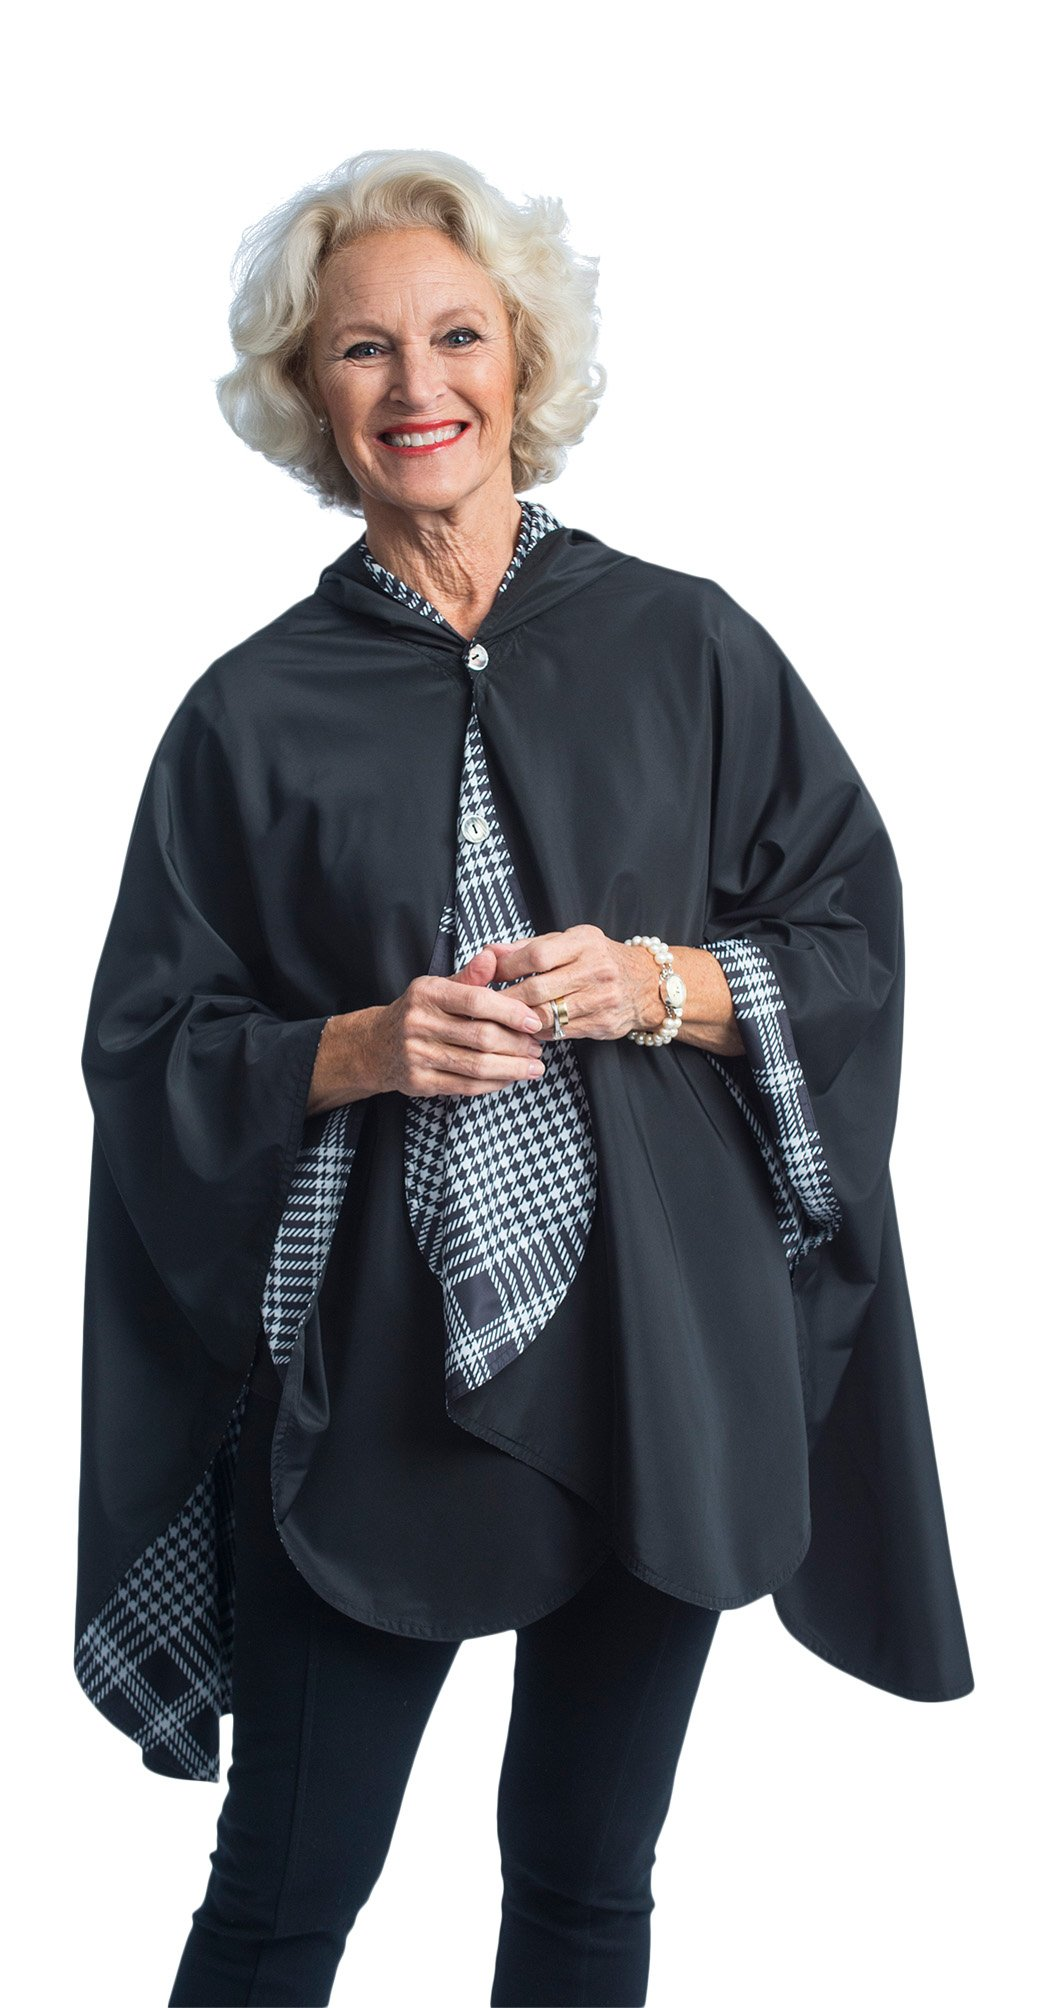 RainCaper Rain Poncho for Women - Reversible Rainproof Hooded Cape in Gorgeous Ultrasoft Colors (Black & B&W Houndstooth Plaid)